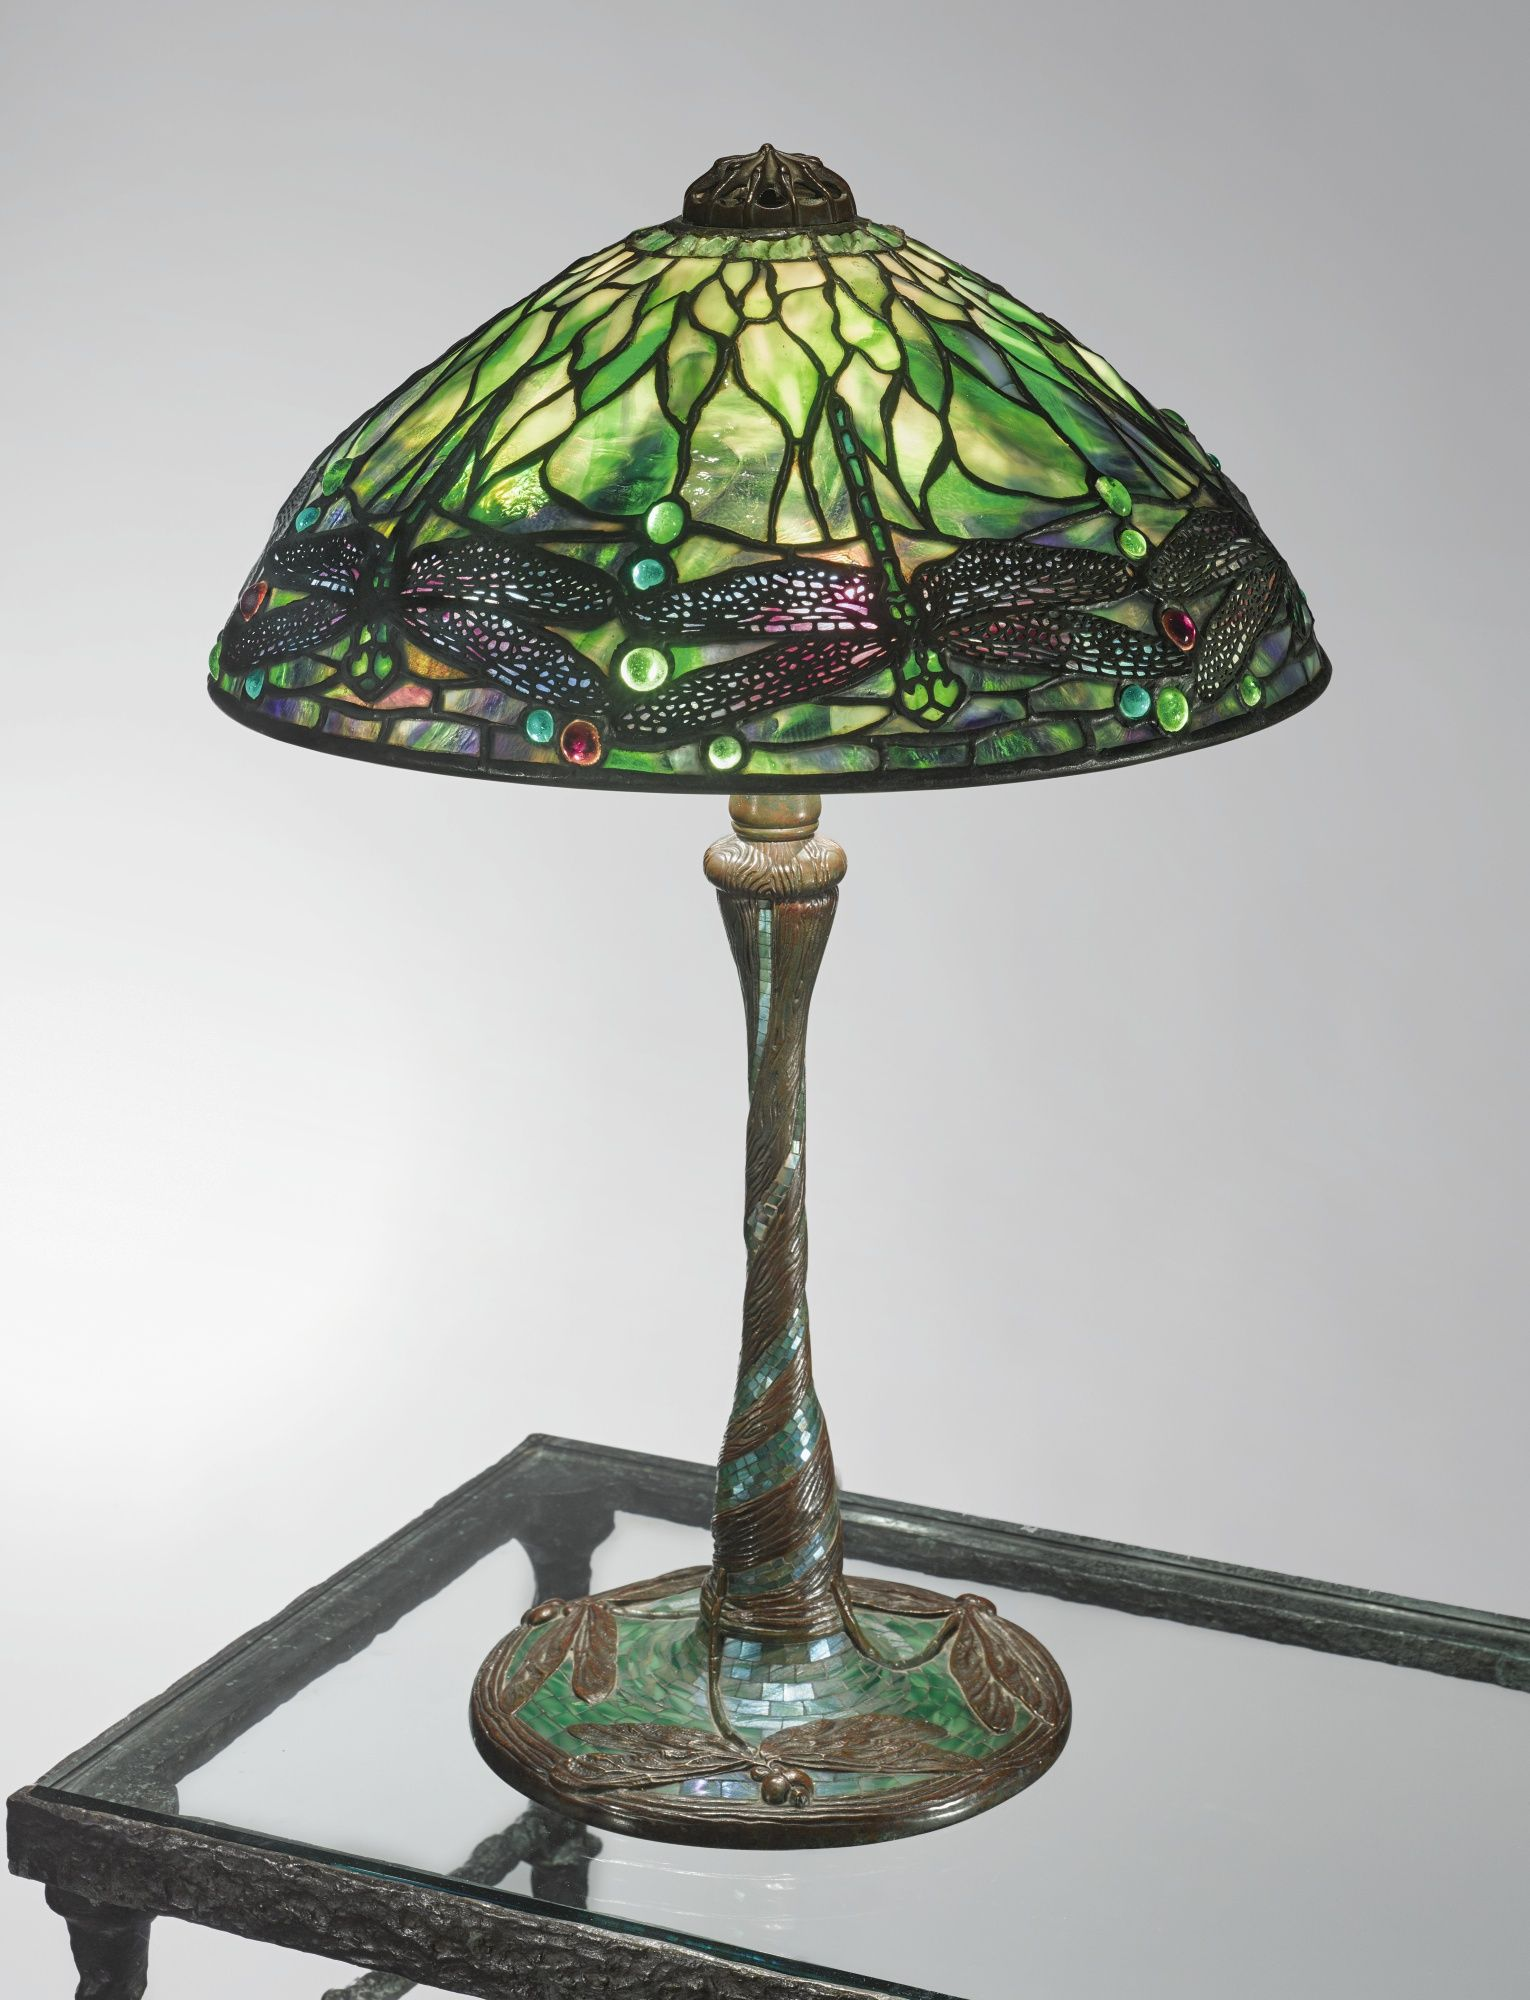 Tiffany Studios Dragonfly Table Lamp With A Rare Mosaic Glass